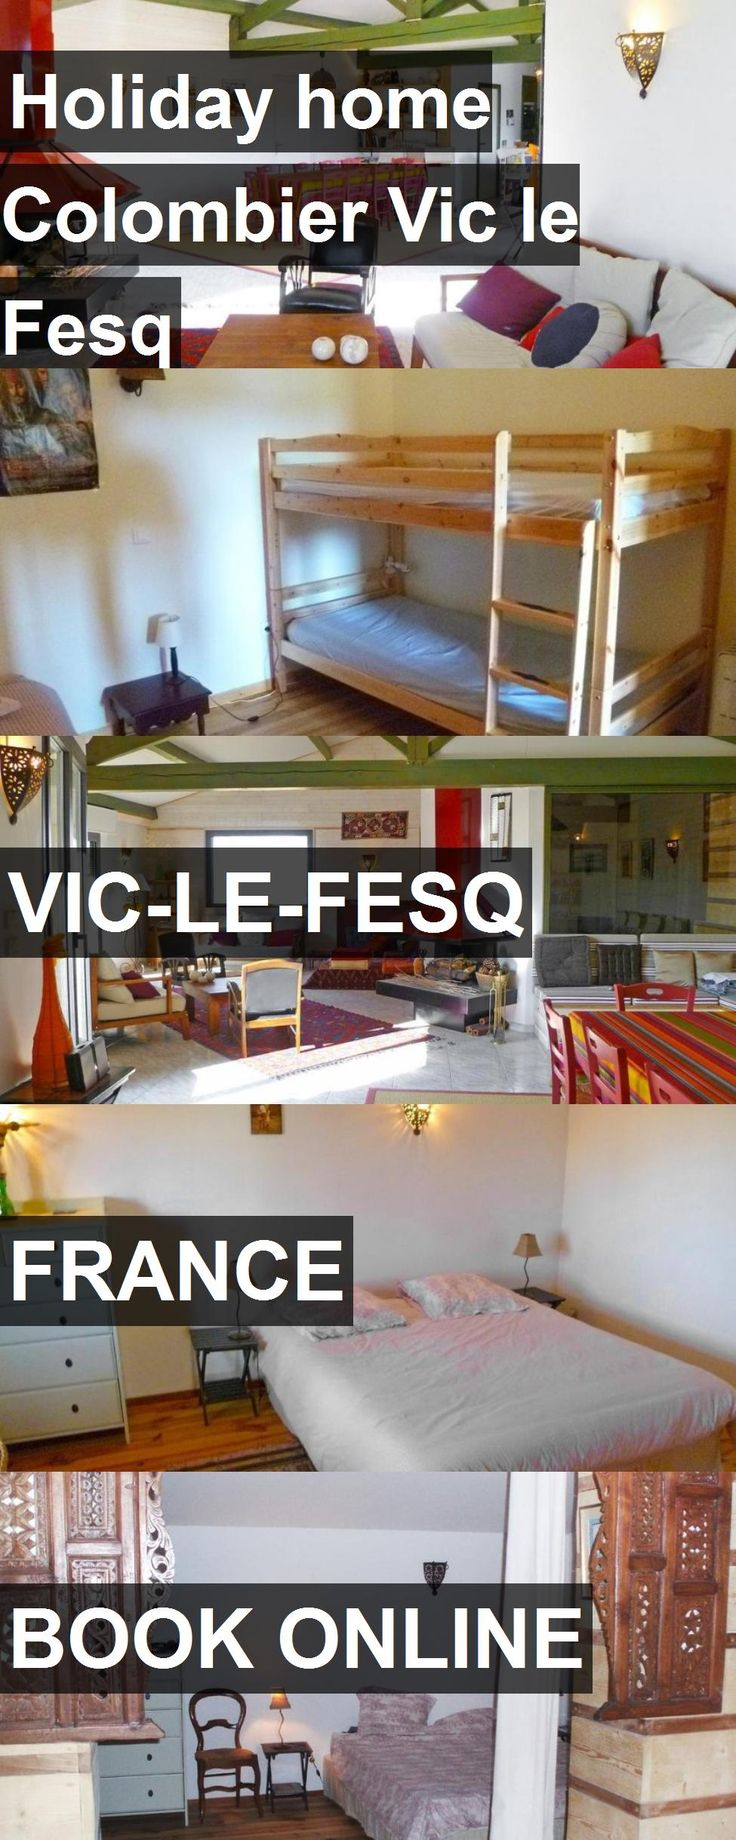 Hotel Holiday home Colombier Vic le Fesq in Vic-le-Fesq, France. For more information, photos, reviews and best prices please follow the link. #France #Vic-le-Fesq #travel #vacation #hotel